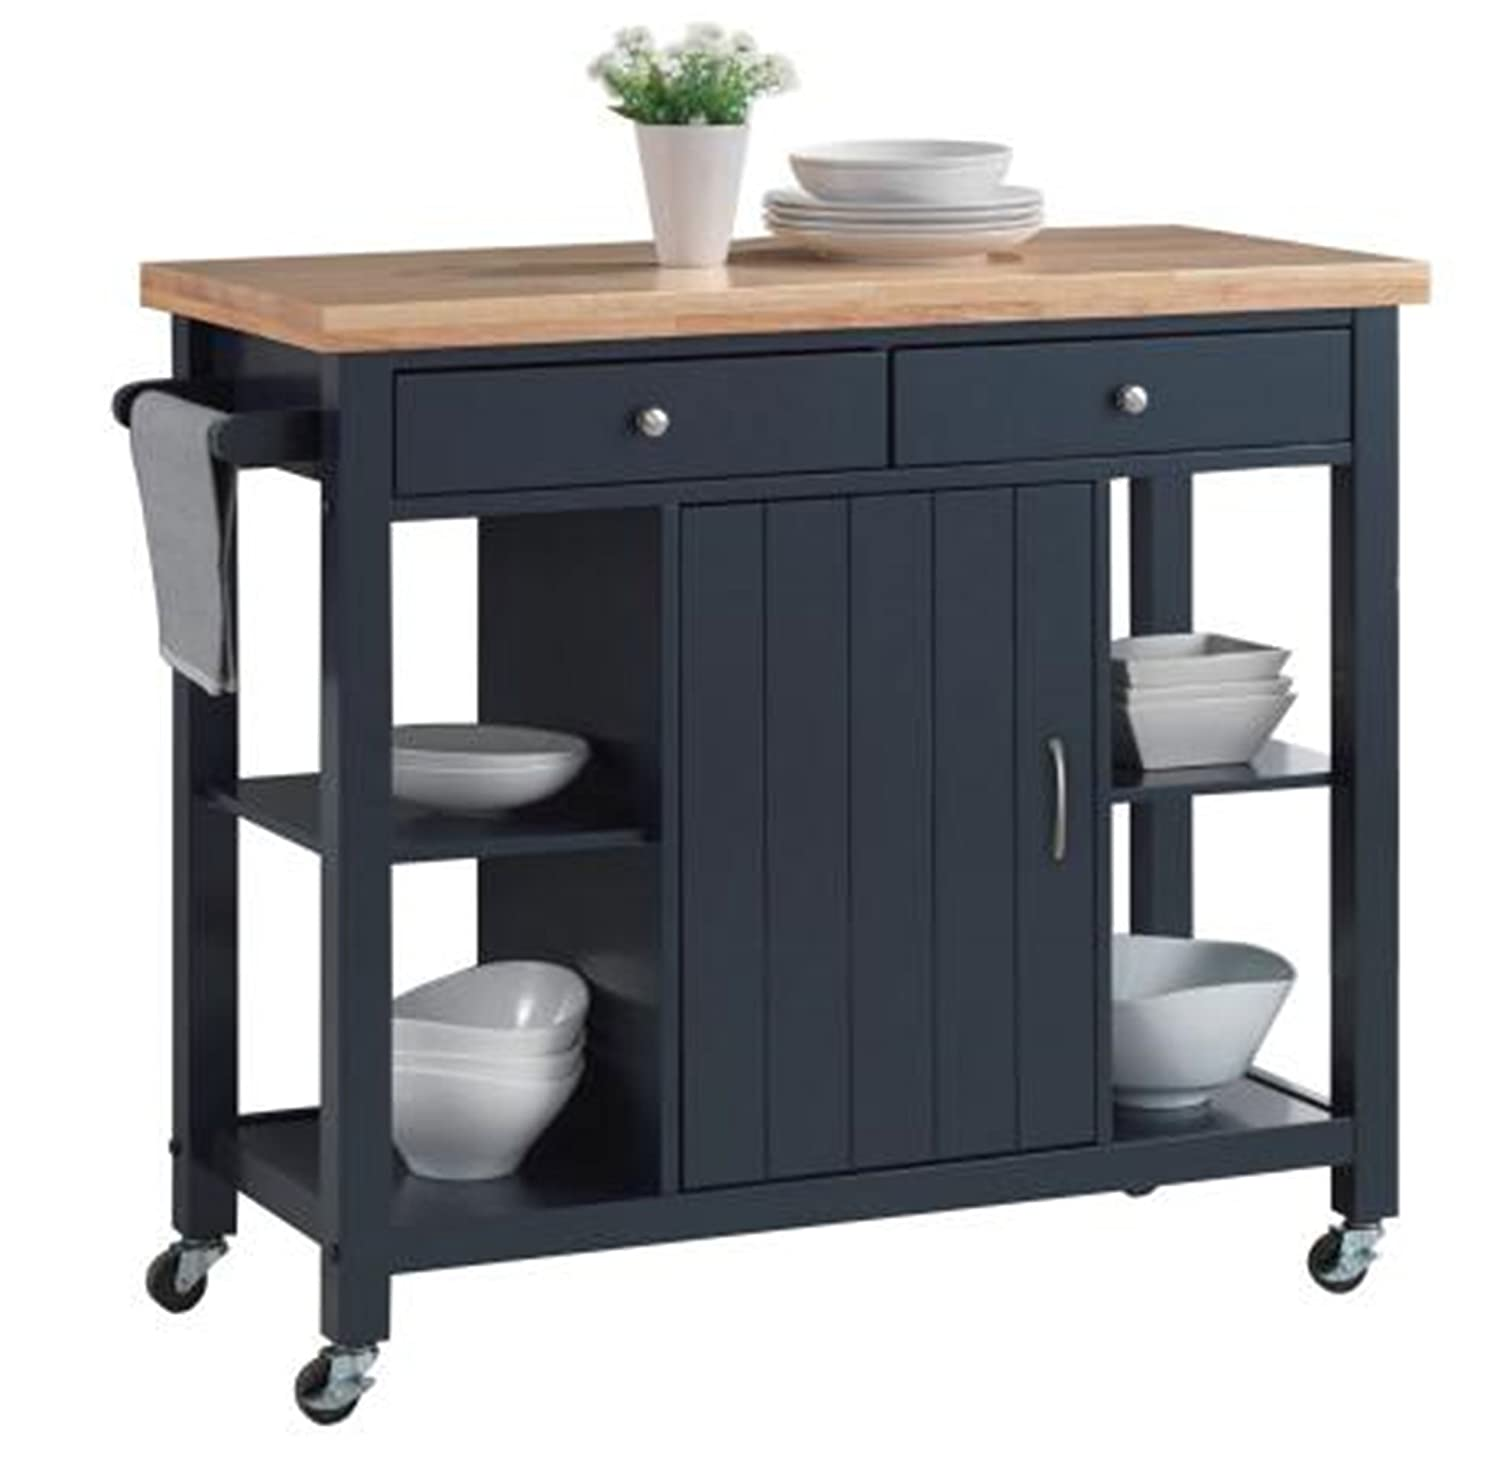 Oliver And Smith   Nashville Collection   Large Mobile Kitchen Island Cart  On Wheels   Navy